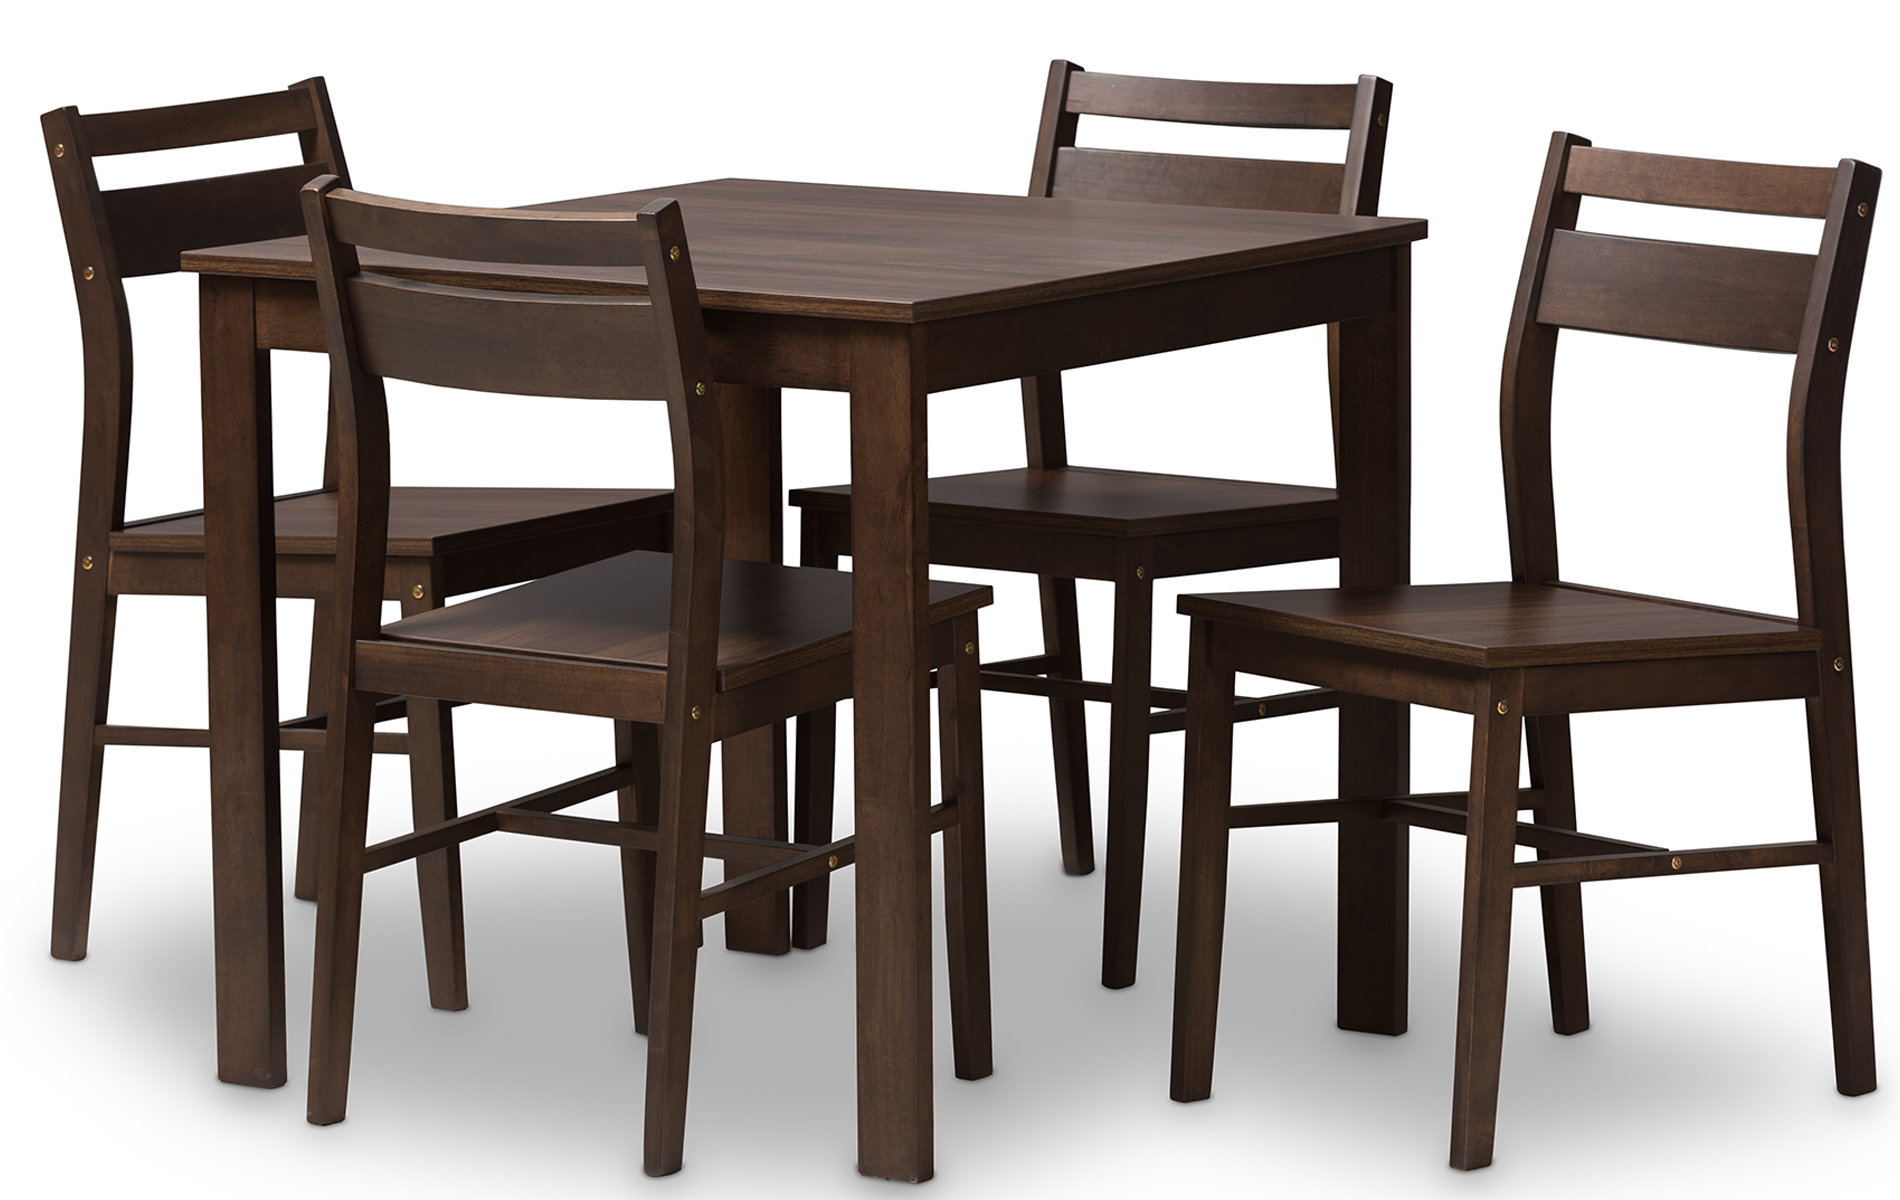 Hersom 5 Piece Dining Set With Current Frida 3 Piece Dining Table Sets (View 8 of 20)